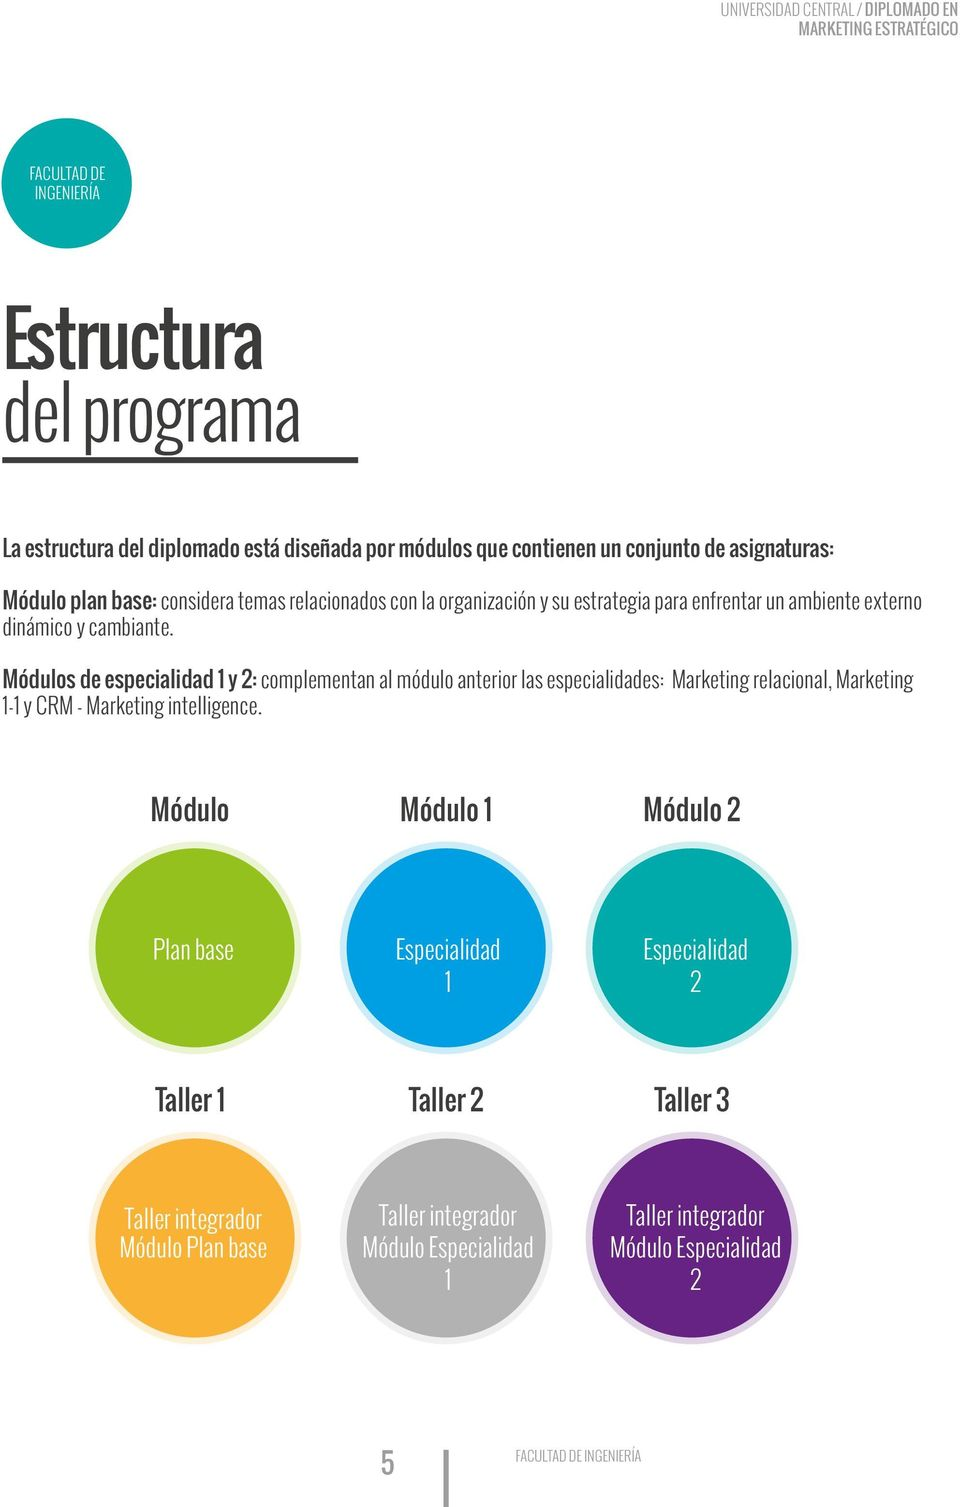 Módulos de especialidad 1 y 2: complementan al módulo anterior las especialidades: Marketing relacional, Marketing 1-1 y CRM - Marketing intelligence.